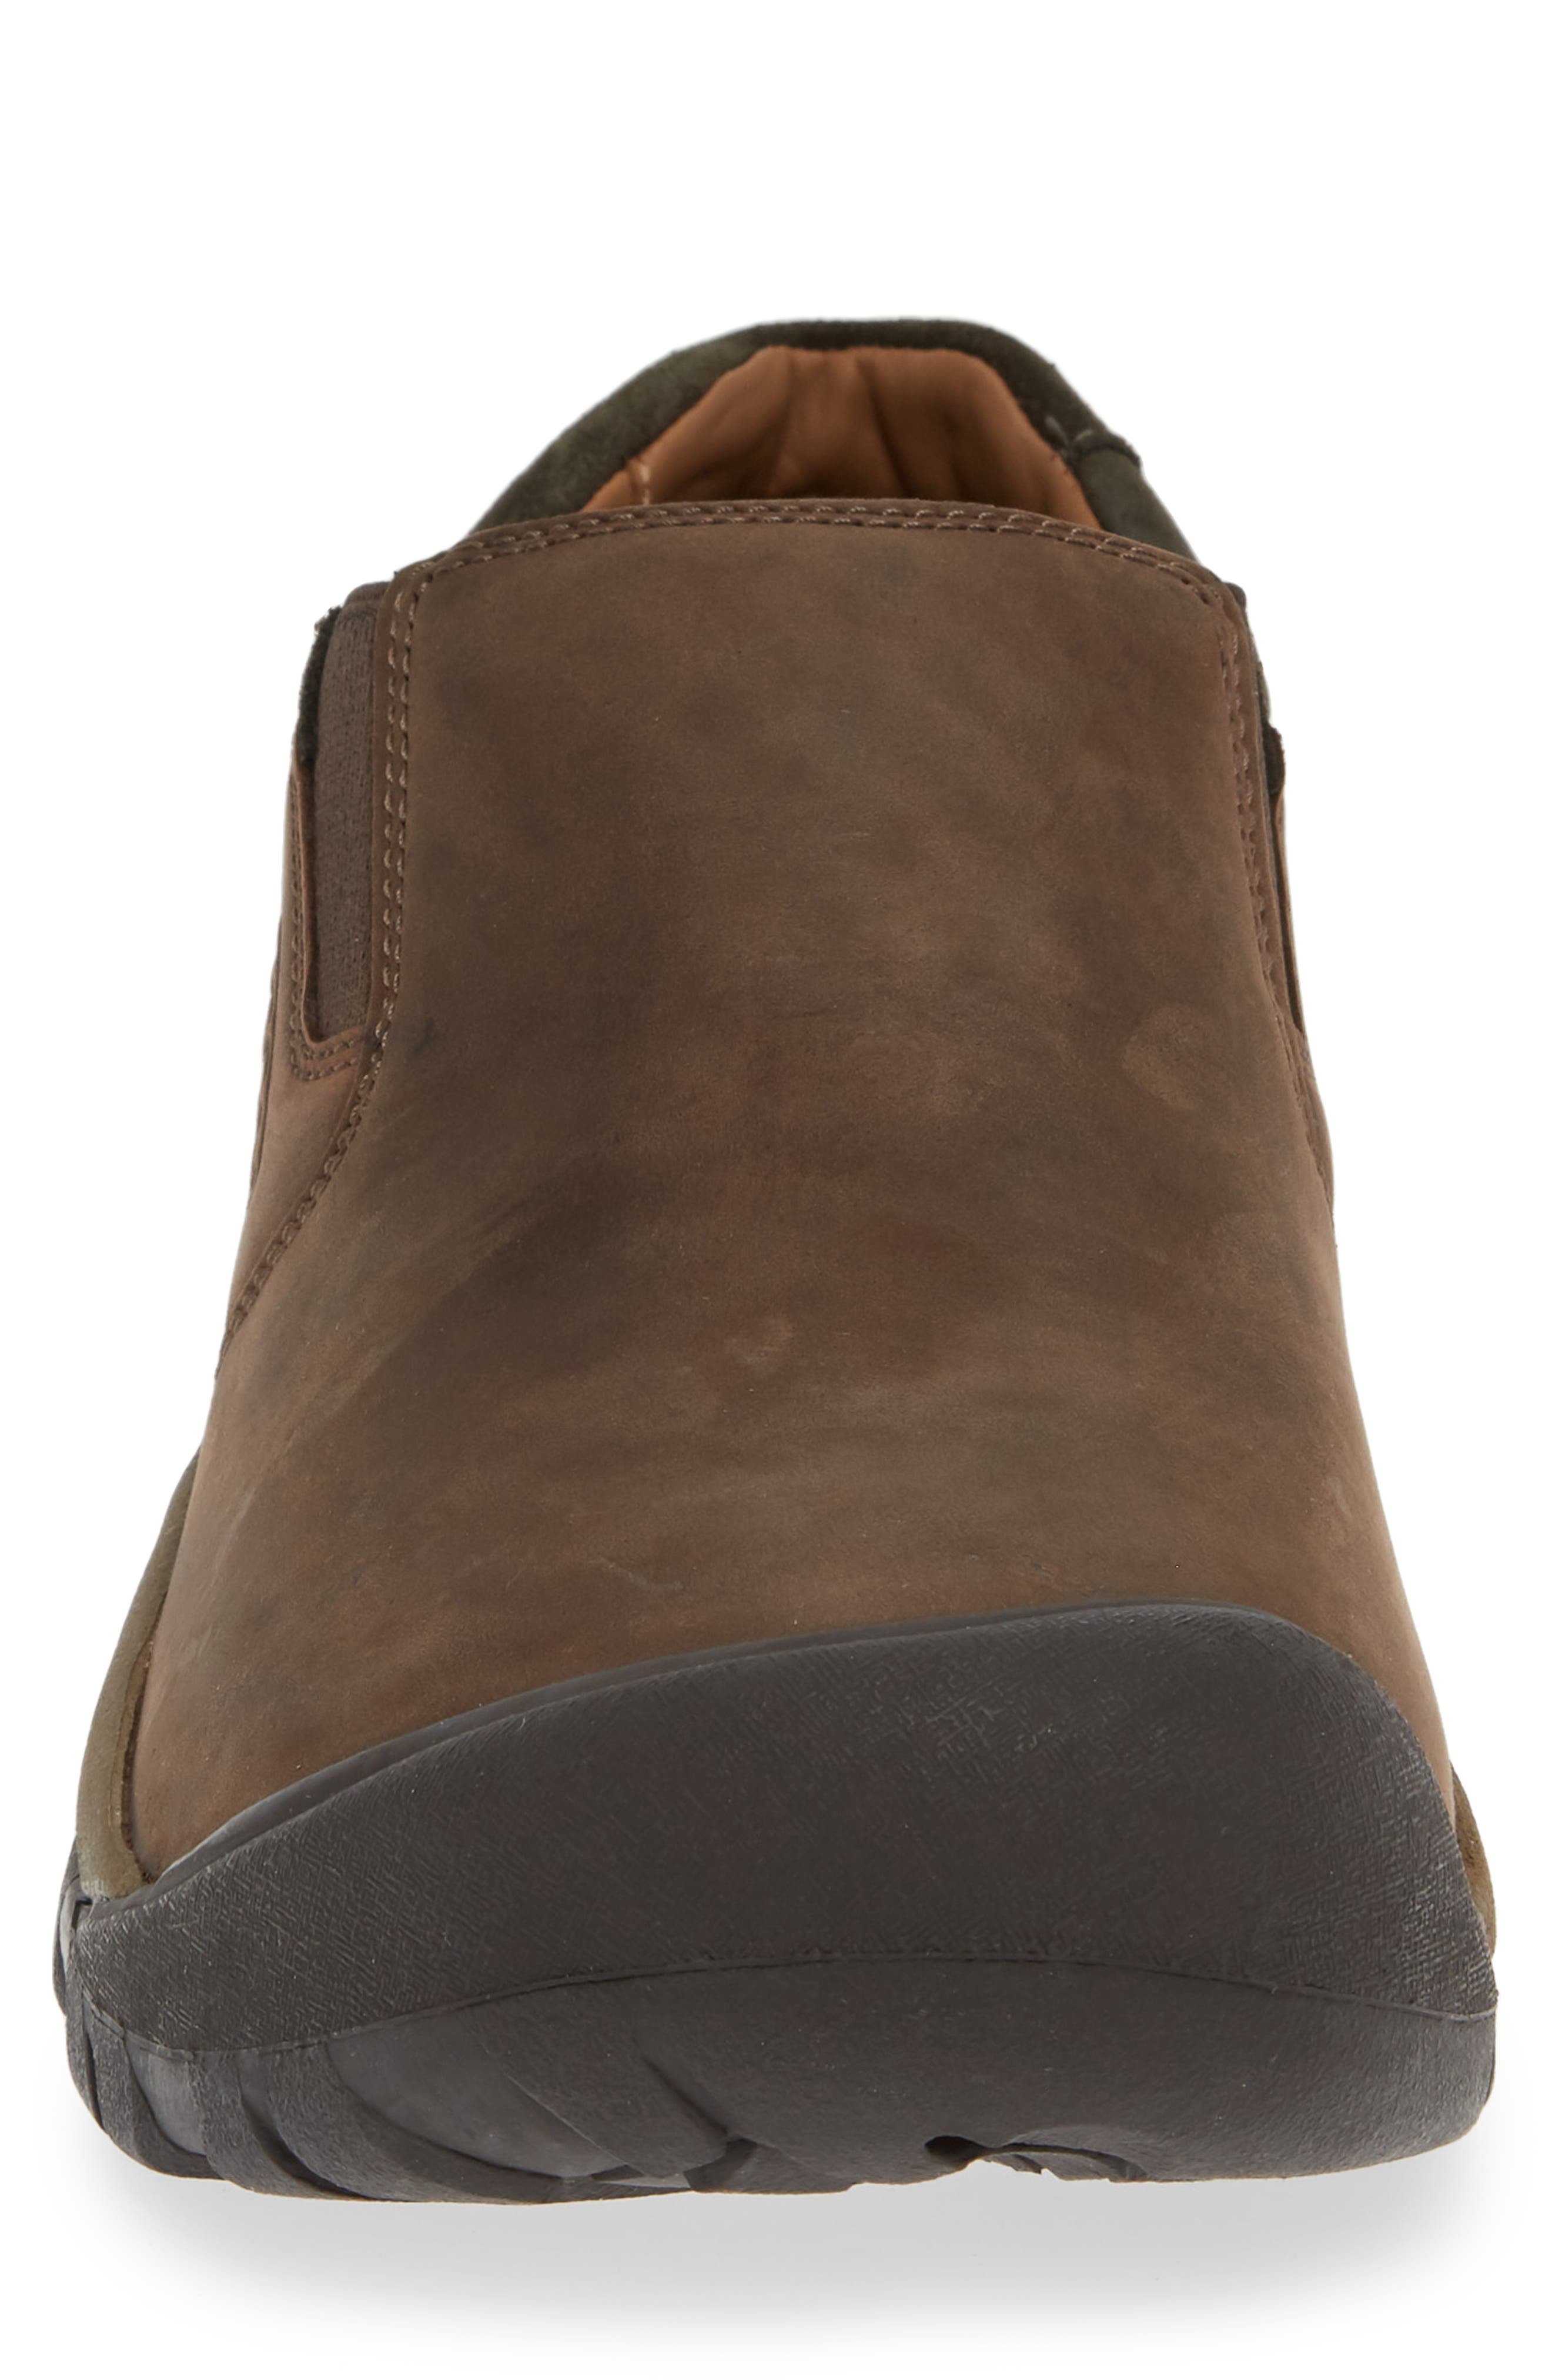 KEEN,                             Austin Water Resistant Slip-On Sneaker,                             Alternate thumbnail 4, color,                             CHOCOLATE BROWN/ BLACK OLIVE